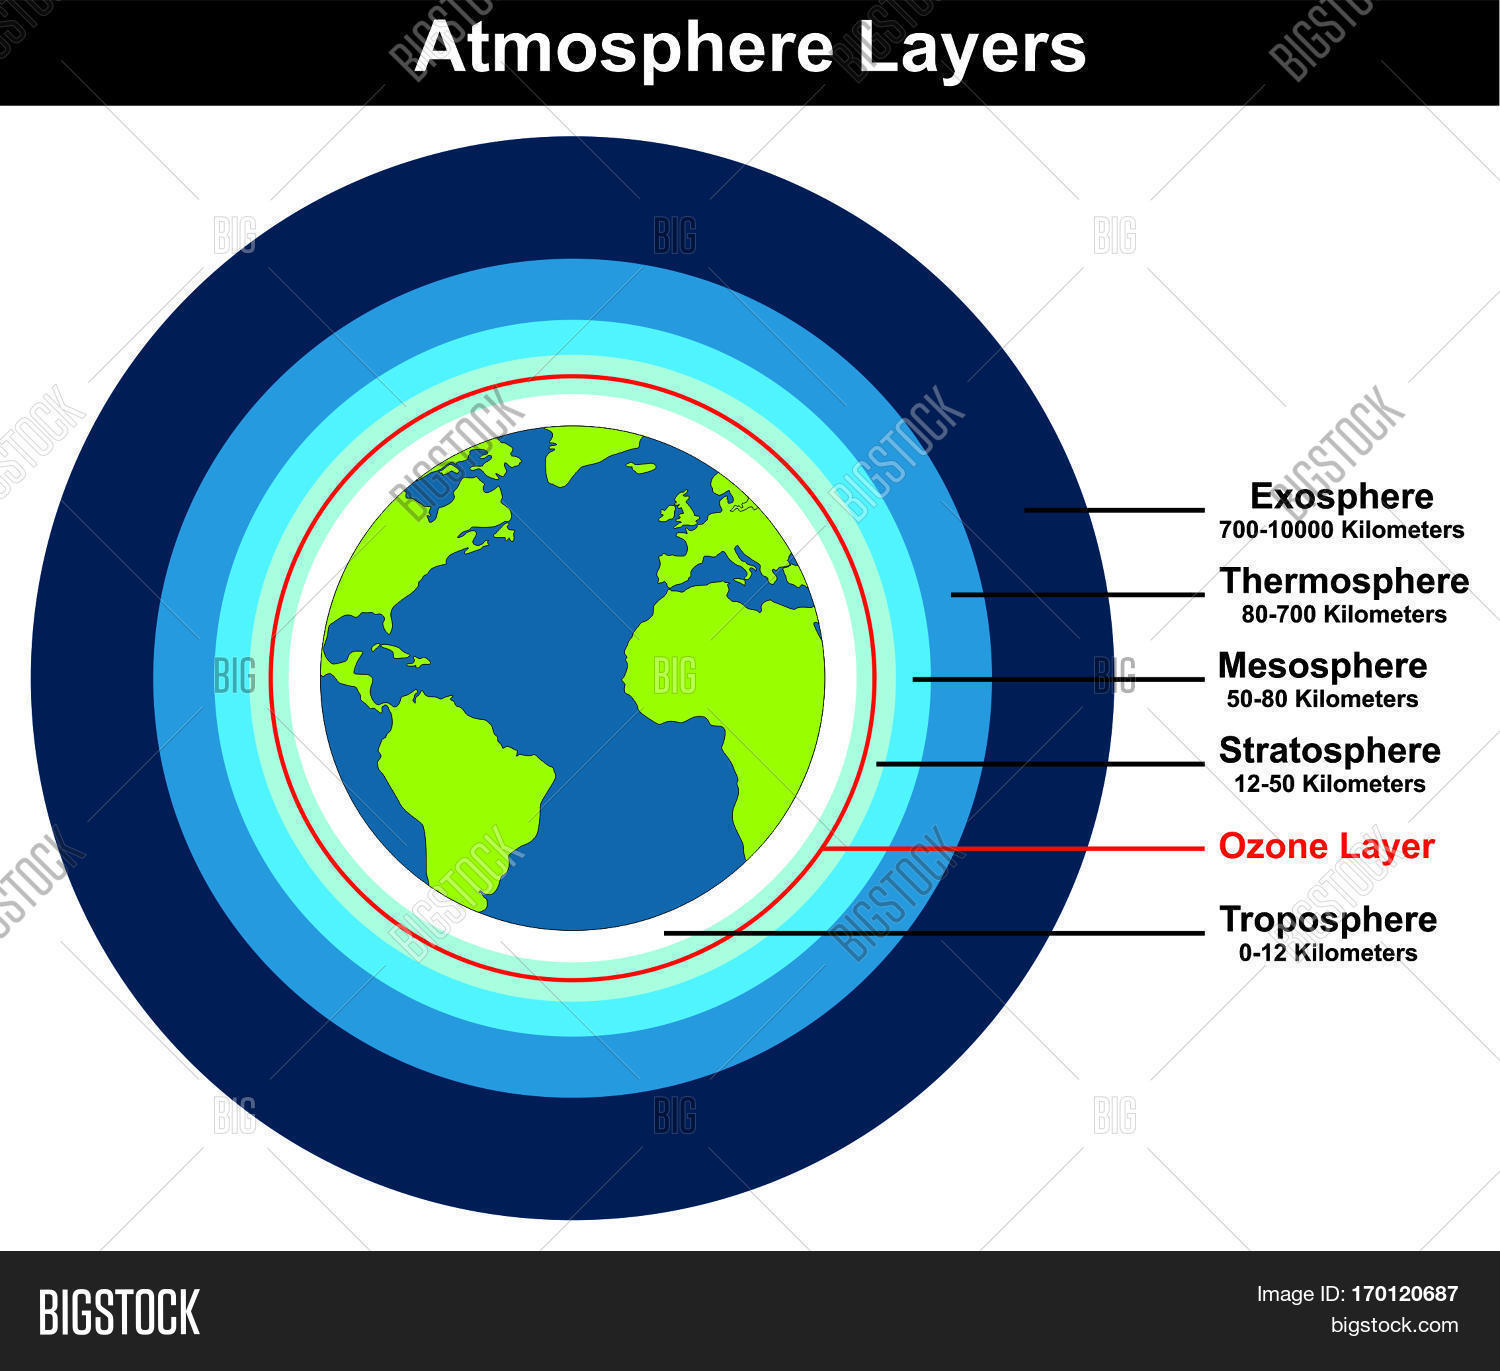 hight resolution of atmosphere layers structure of earth globe approximate thickness length in kilometers diagram with ozone layer troposhere